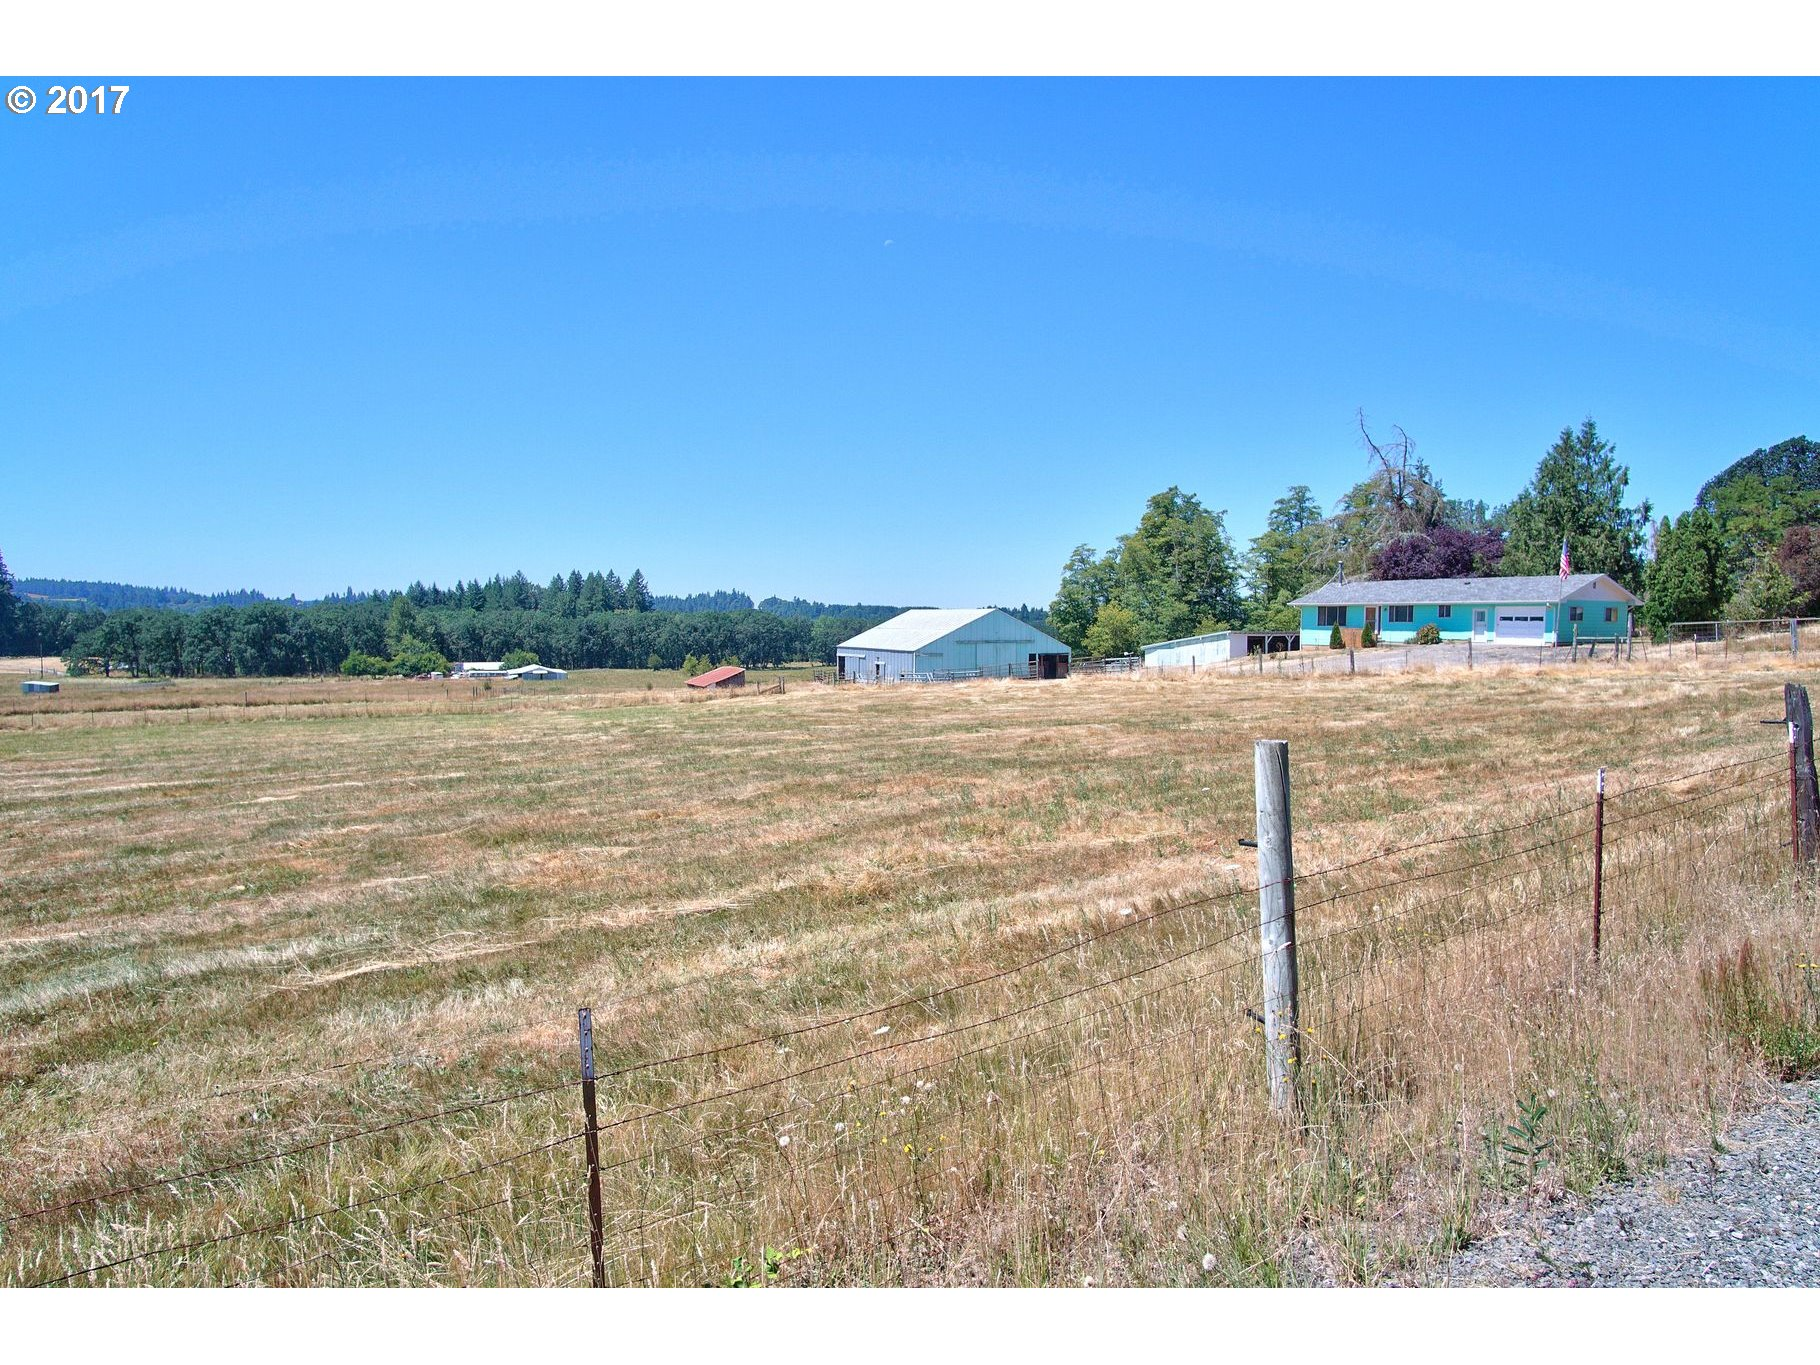 32877 S WRIGHT RD, Molalla, OR 97038